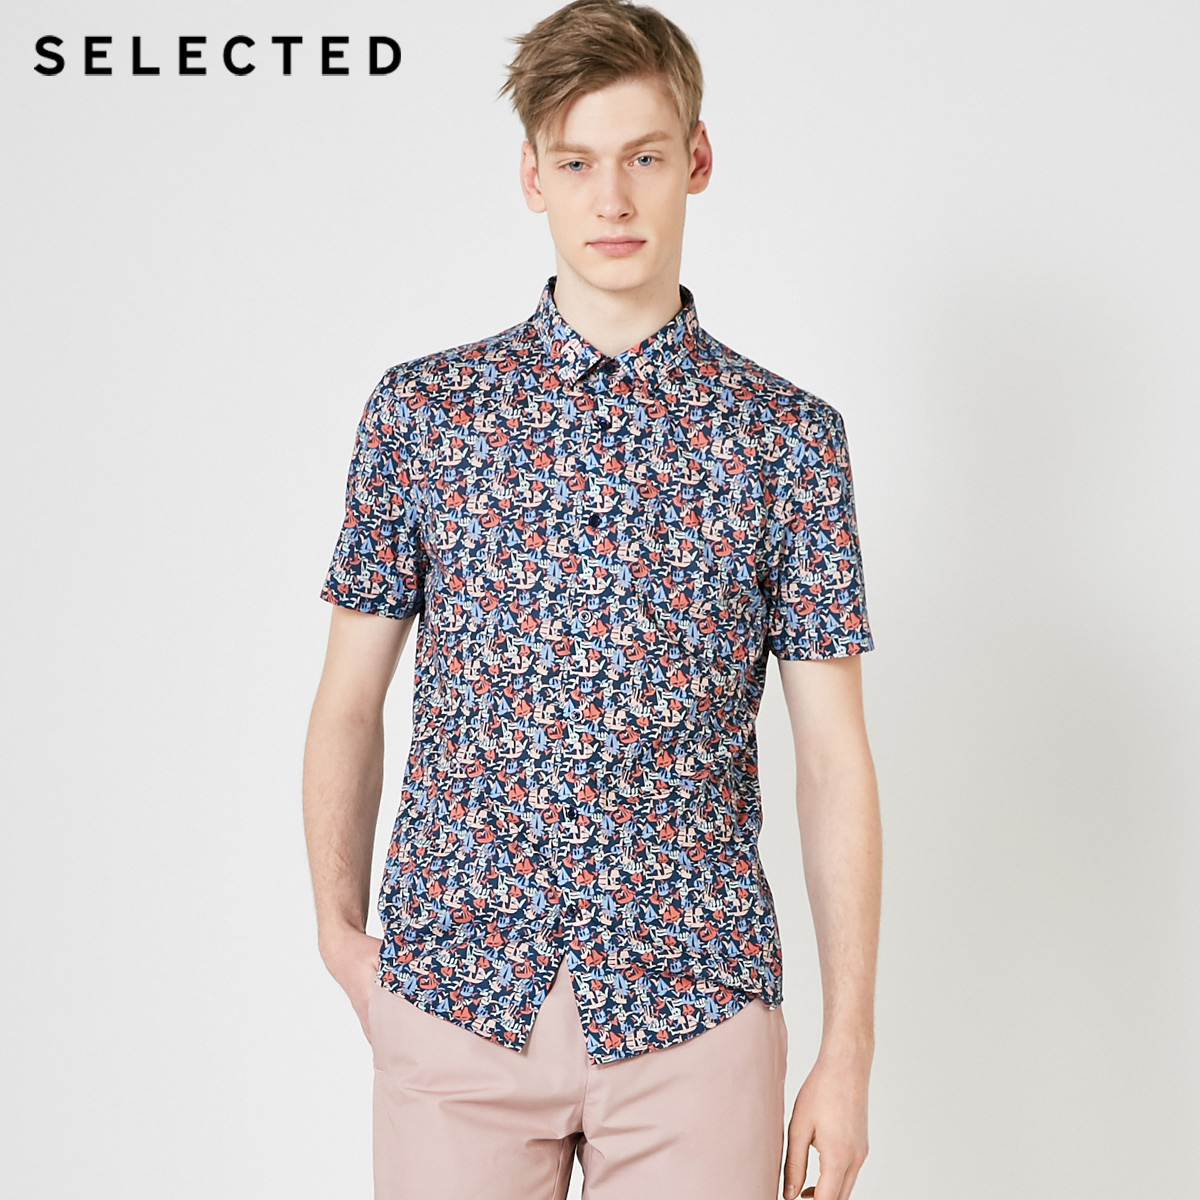 SELECTED Men's Cotton Printed Retro Casual Short-sleeved Shirt S|419204557